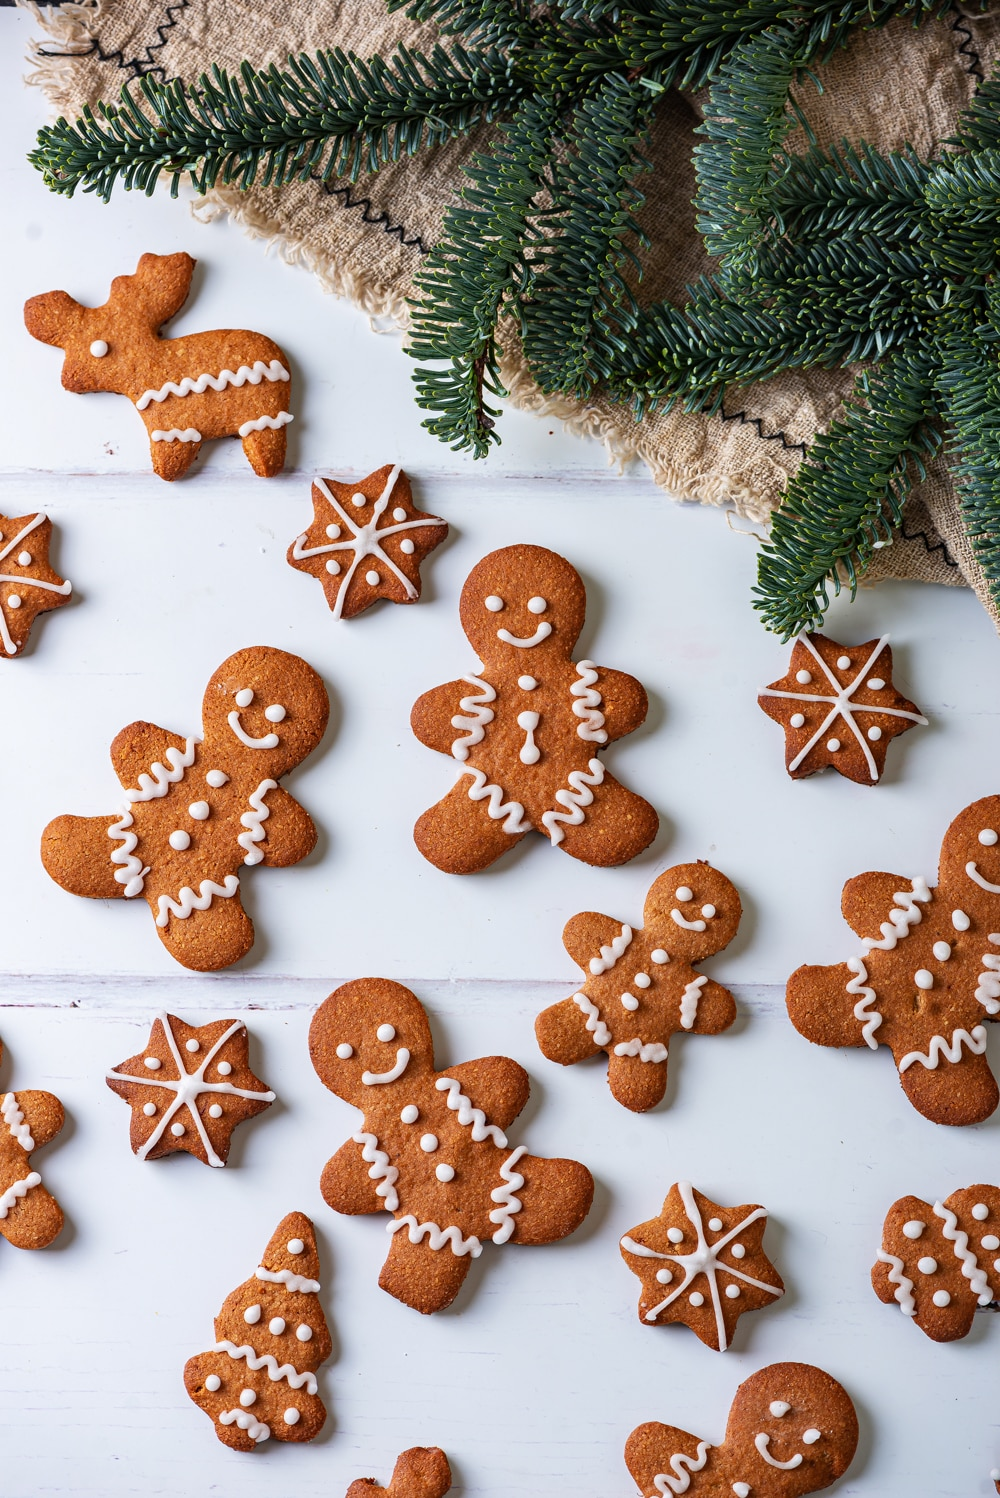 Gingerbread cookies on a white table. Green pine branches are above the cookies.